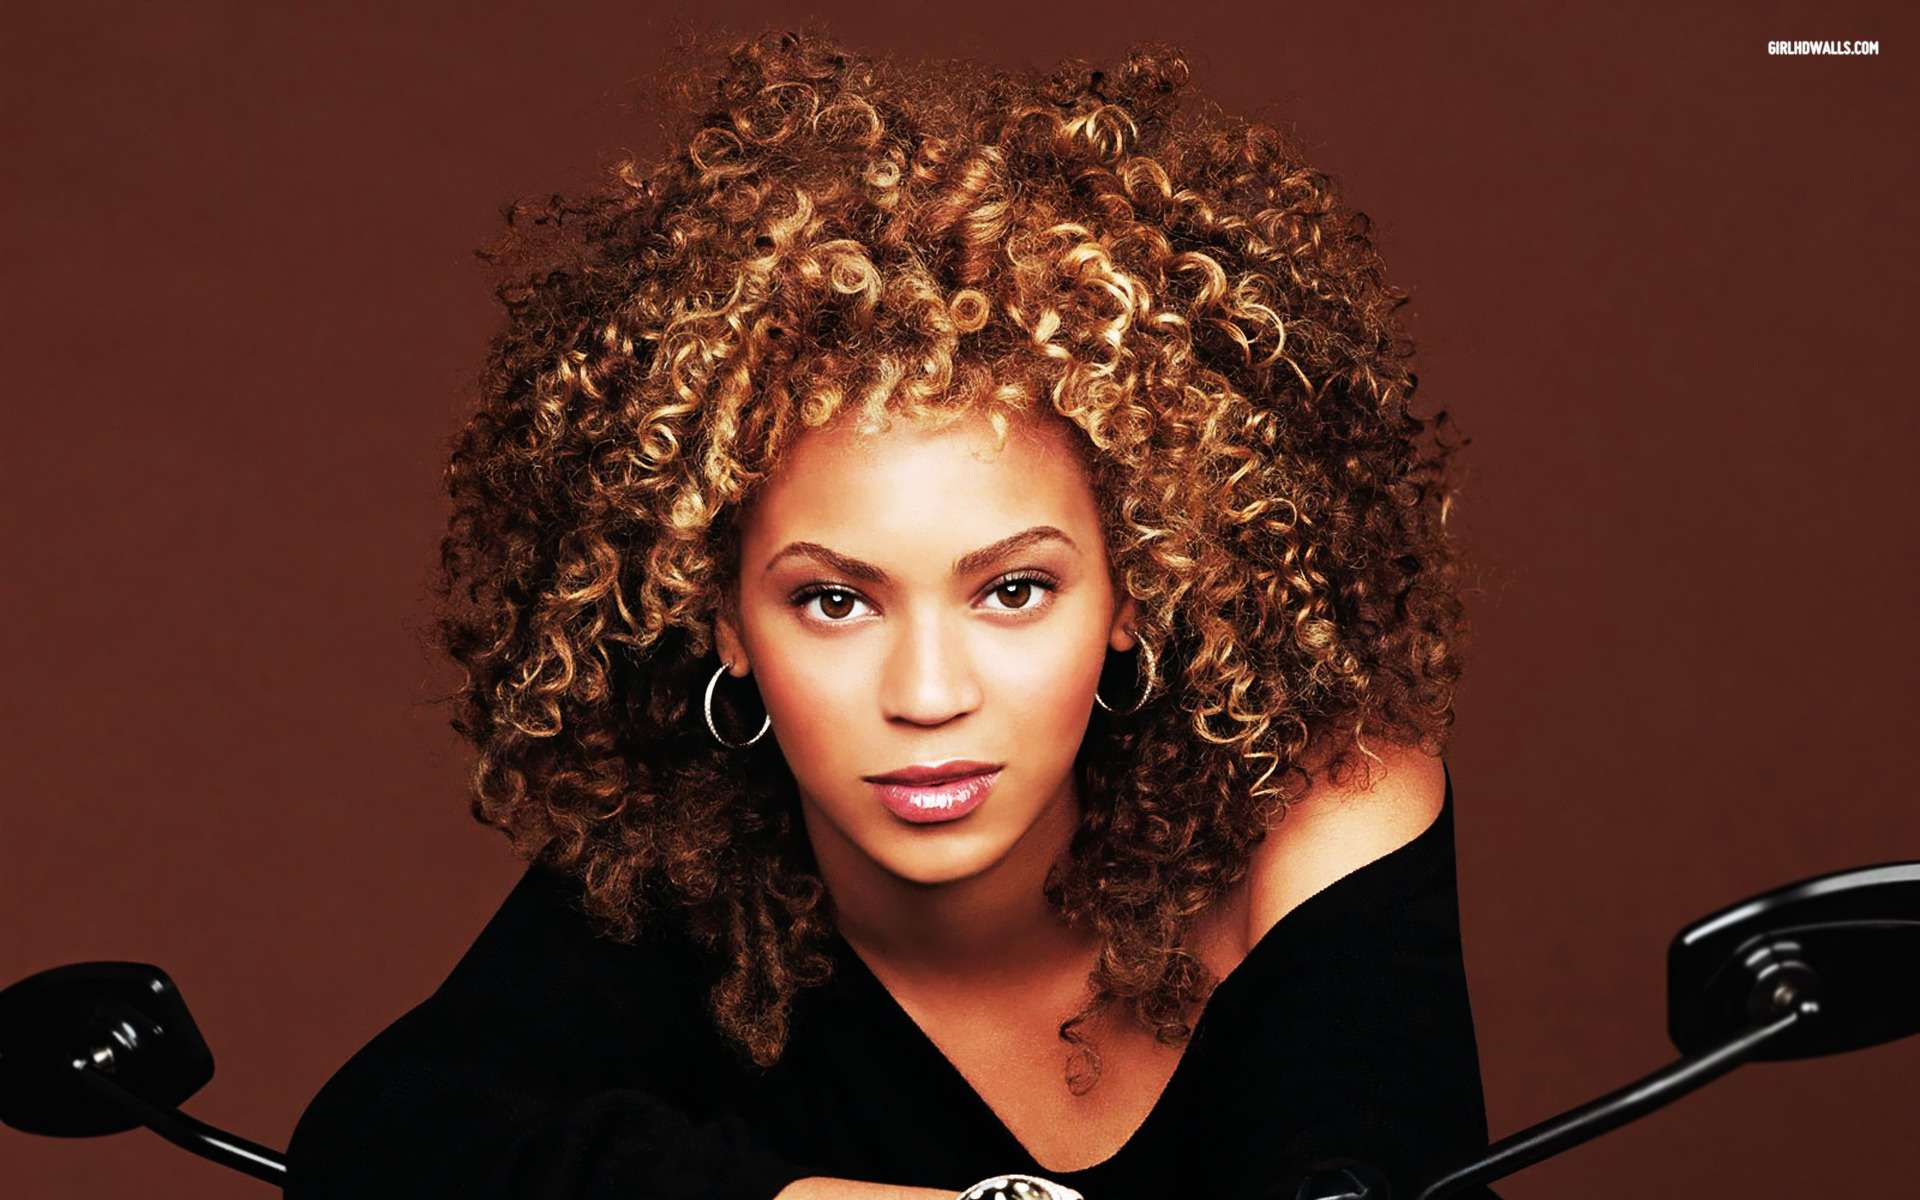 Beyonce Knowles 3 Wallpapers Hd Wallpapers